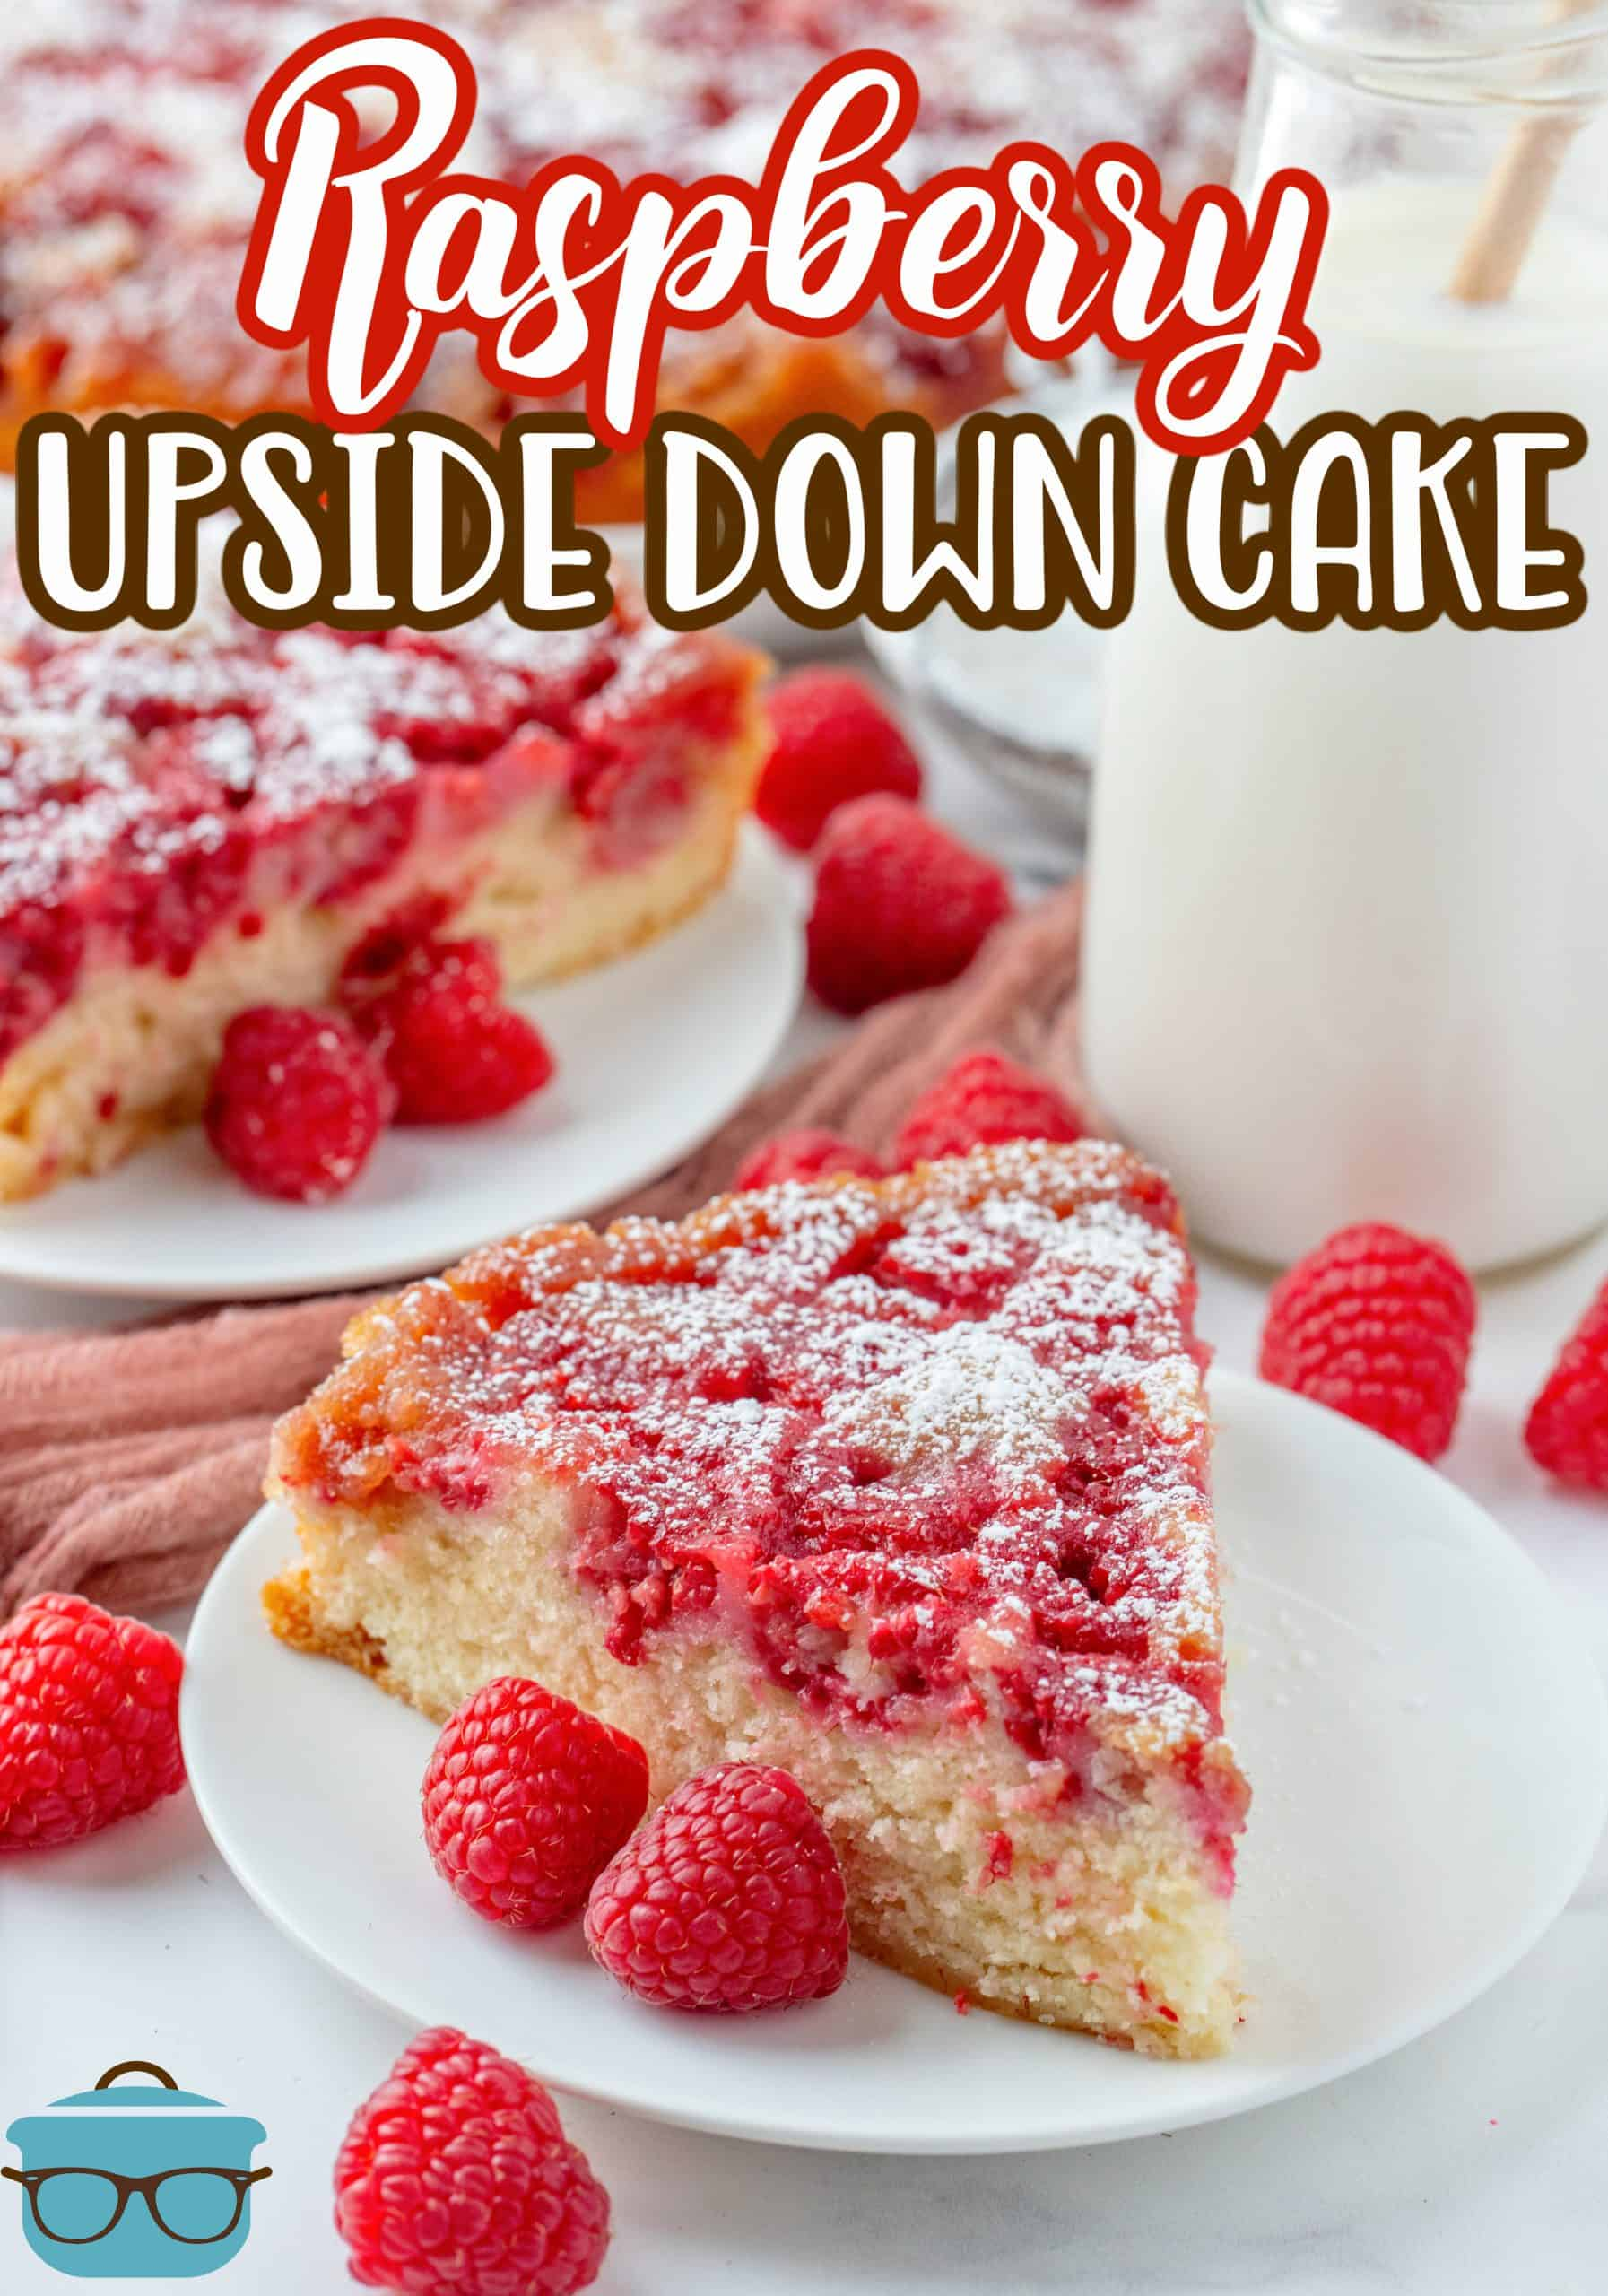 Fun, flavorful and delicious, this Raspberry Upside Down Cake is sweet with a tiny bit of tart all mixed into one. Topped with powdered sugar, each bite is more scrumptious than the last!